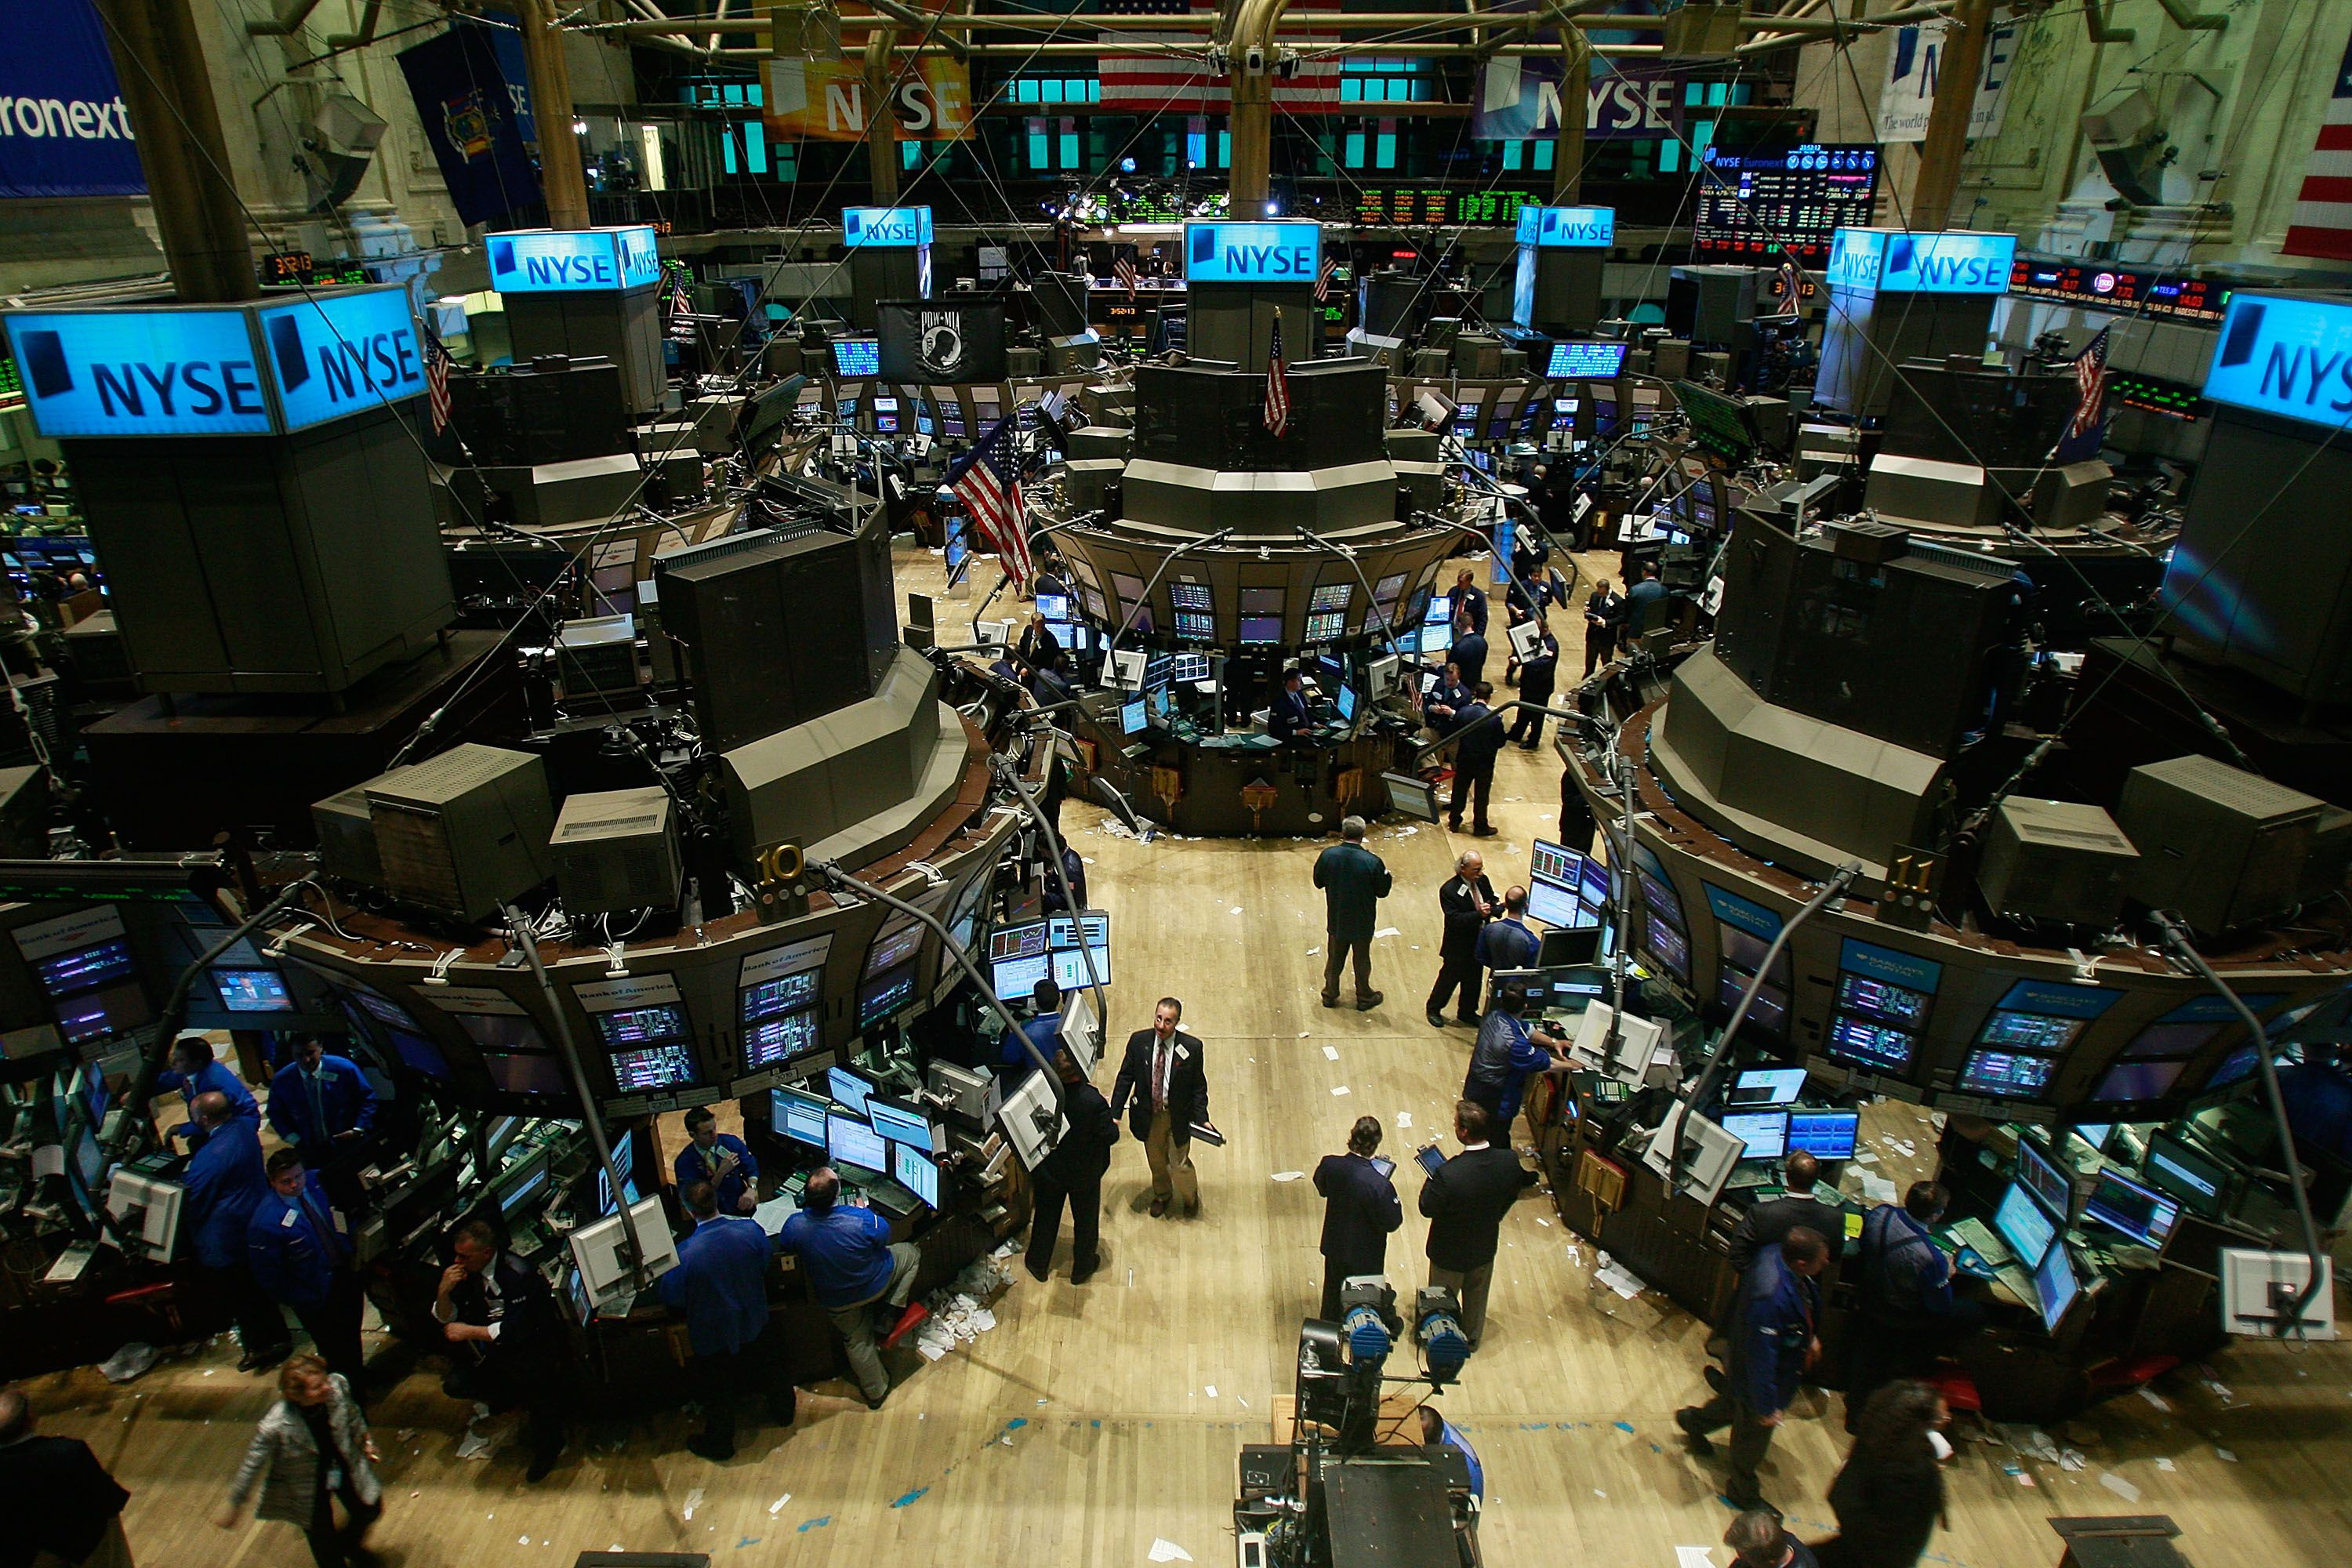 Trading Floor Of The New York Stock Exchange Humor Fun Facts Internet Funny